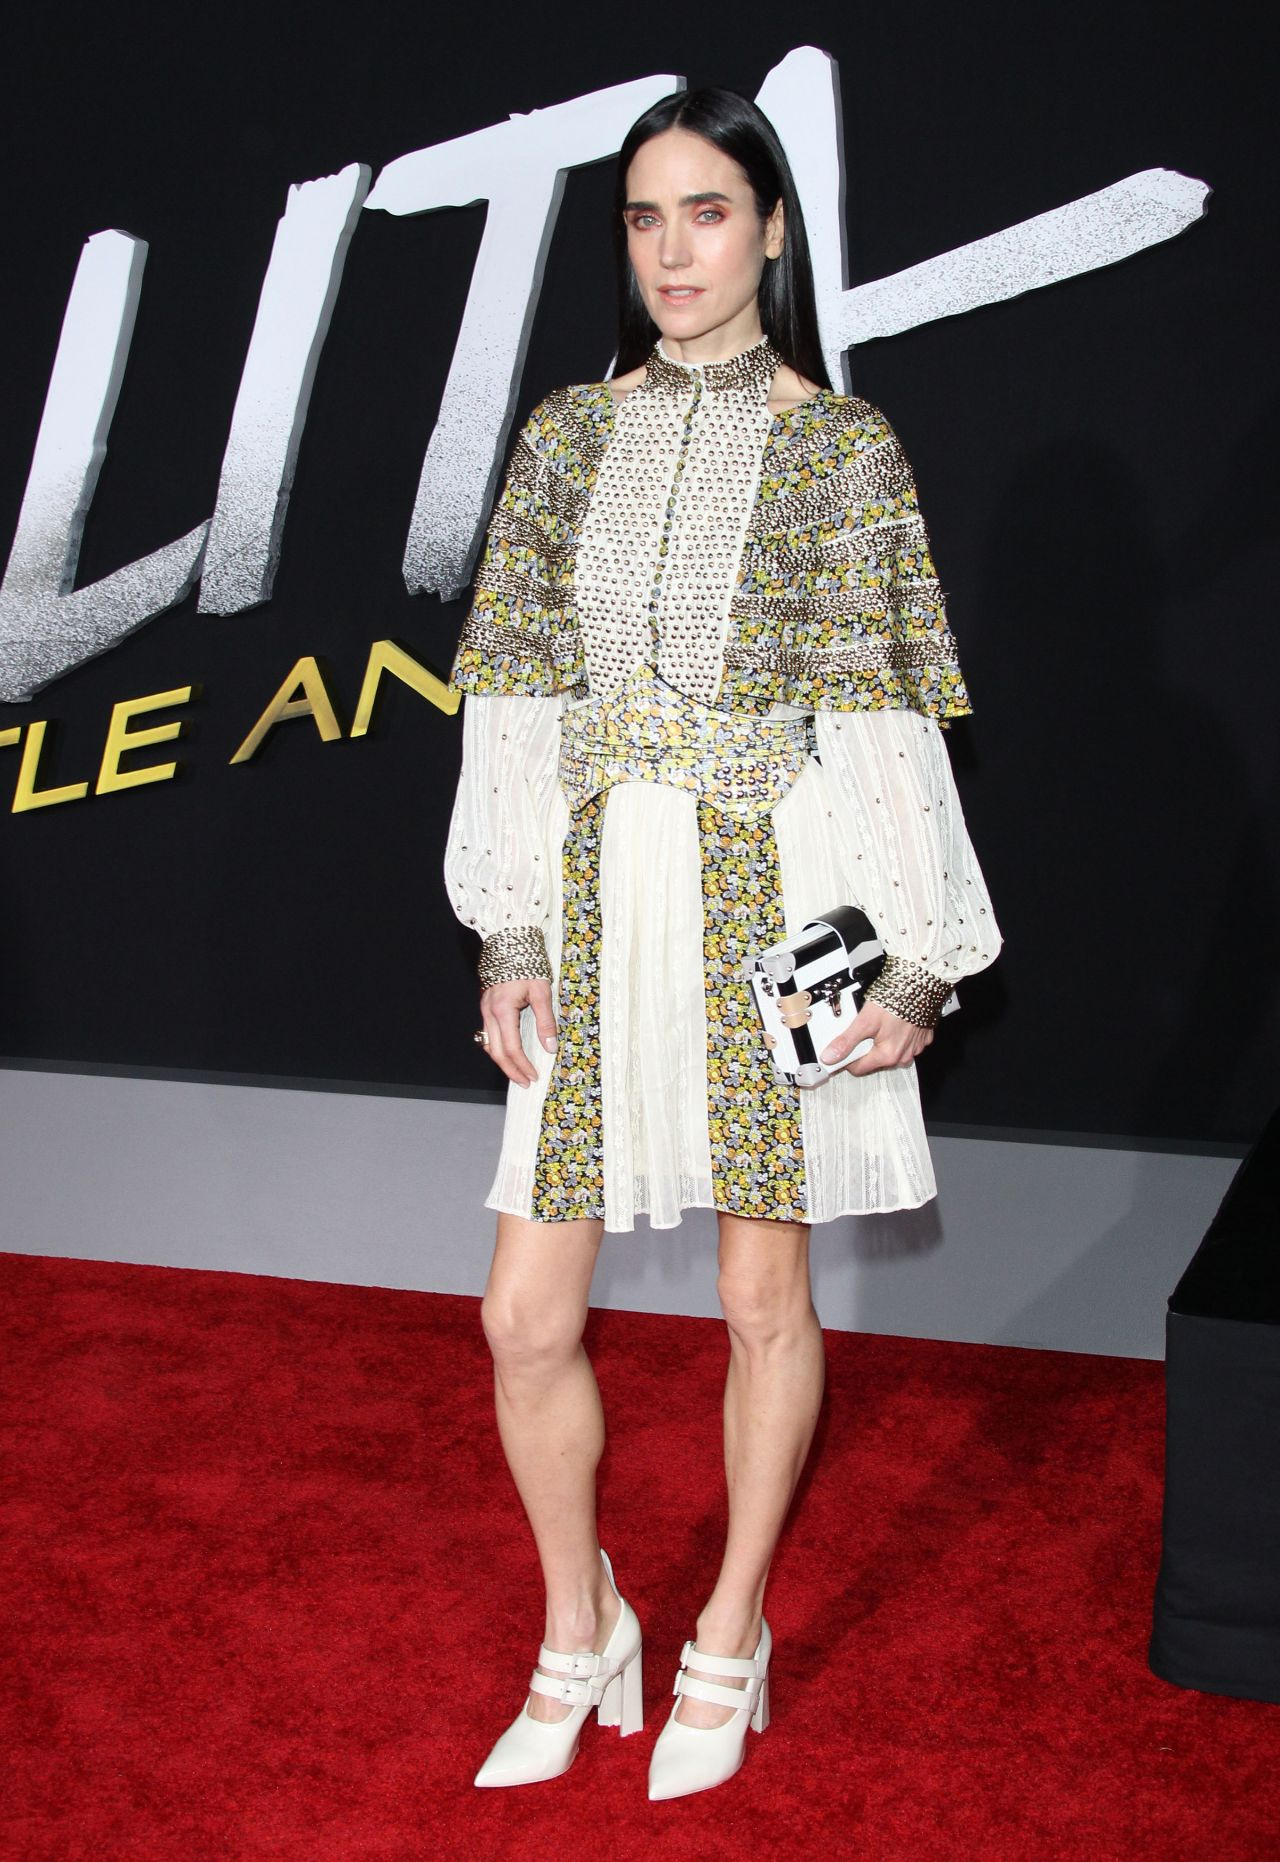 https://celebmafia.com/wp-content/uploads/2019/02/jennifer-connelly-alita-battle-angel-premiere-in-la-2.jpg